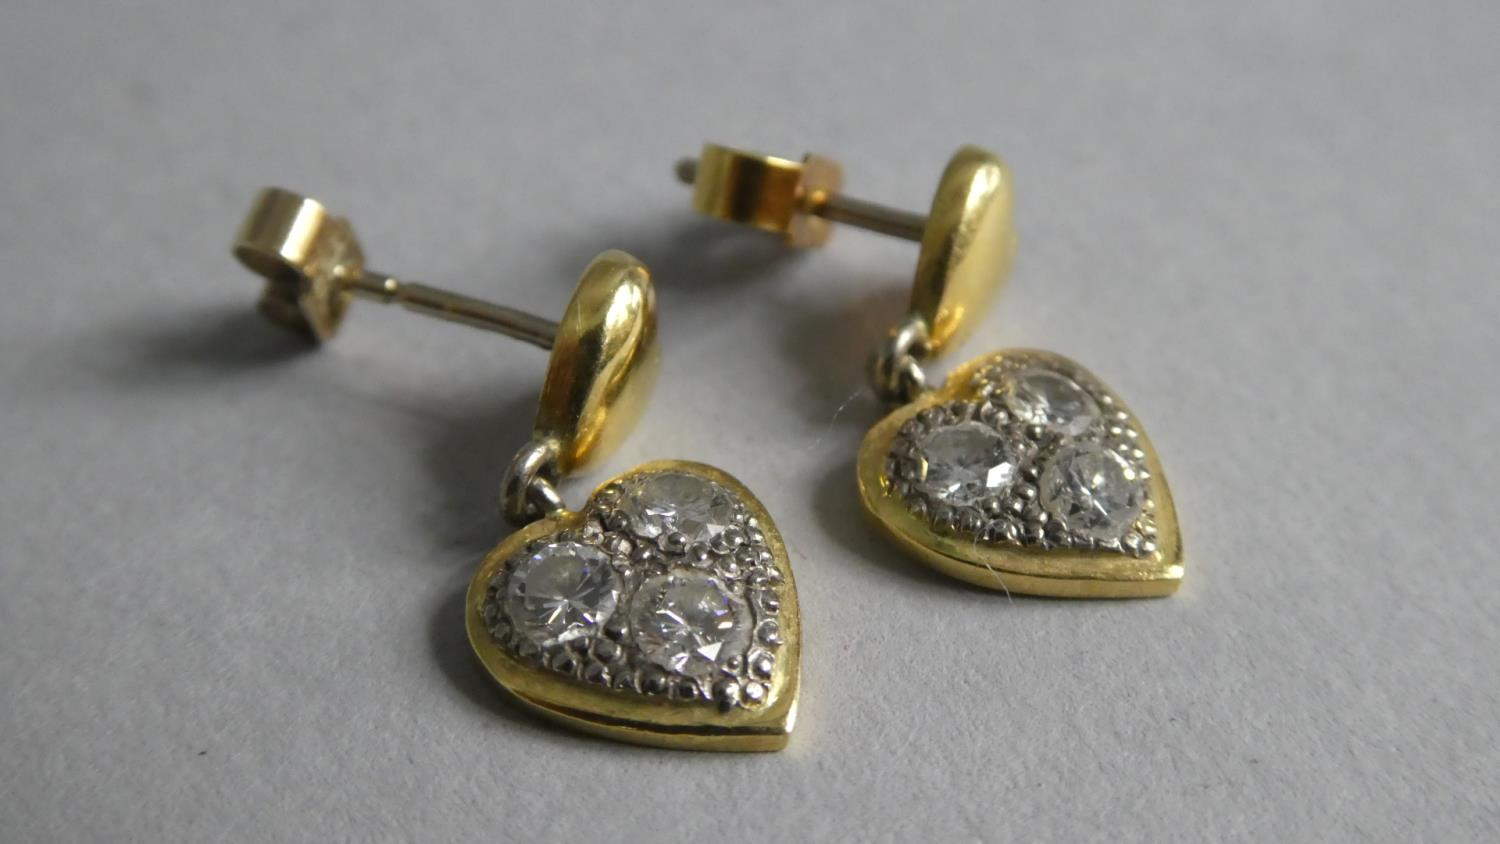 Lot 335 - A Pair of 18ct Yellow Gold and Diamond Earrings. Heart Shaped Drops containing Three Diamonds.